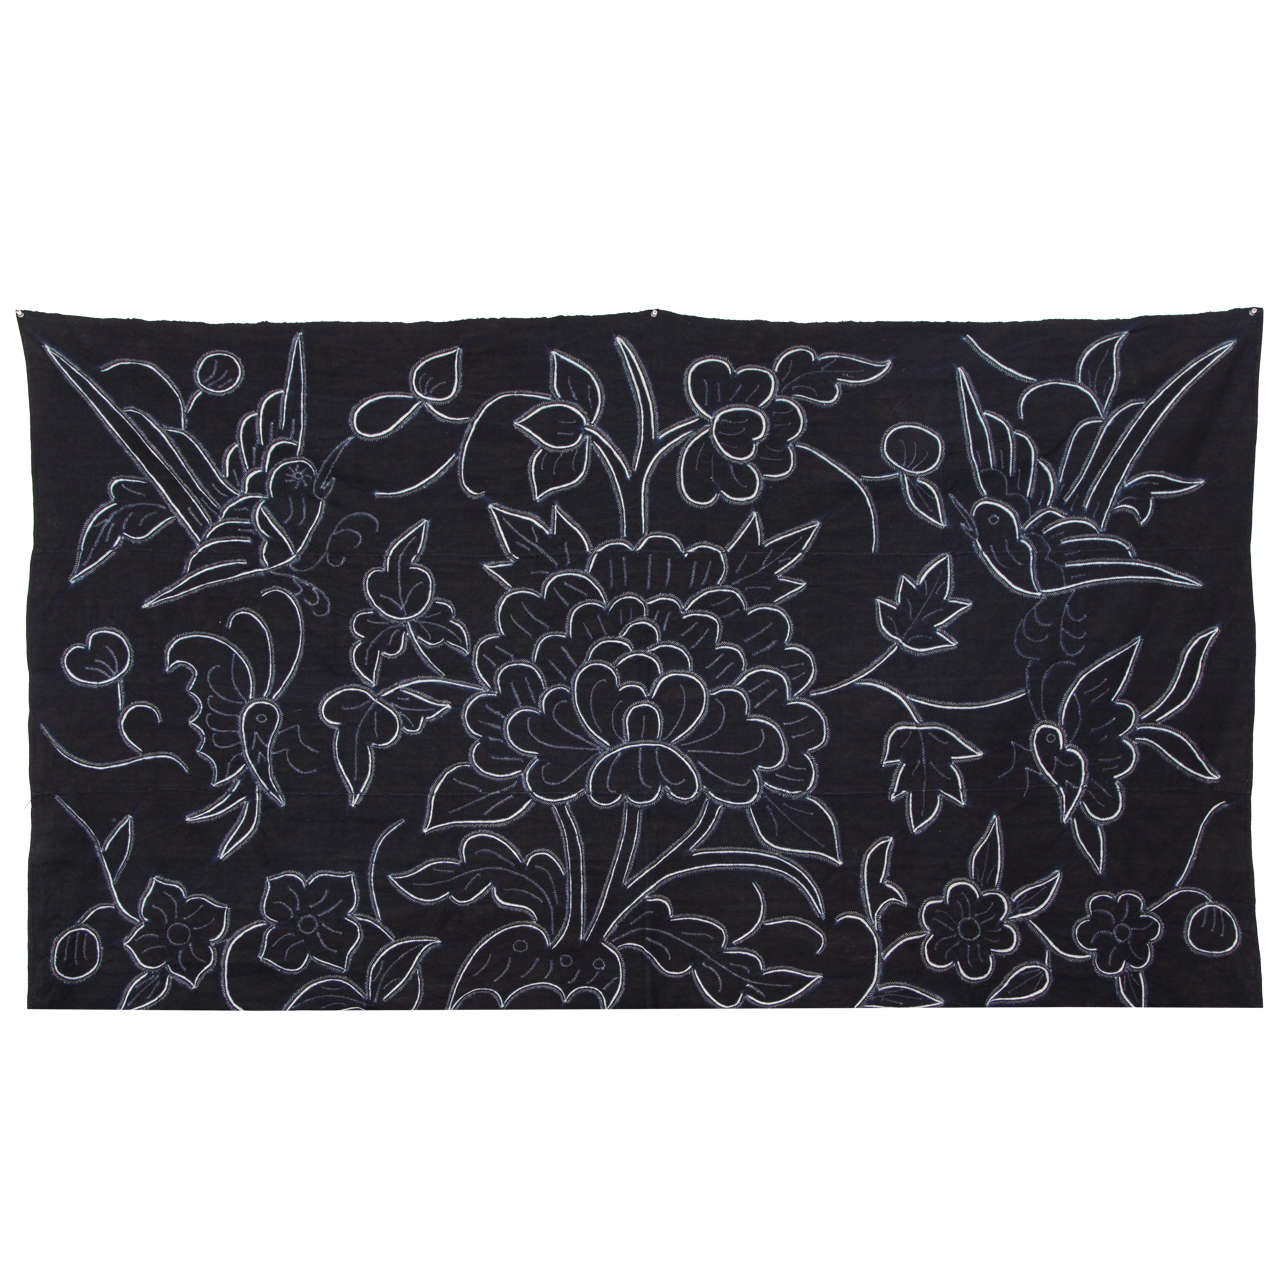 Indigo Textile with Decorative Flowers by Chinese Bouyei People, circa 1980